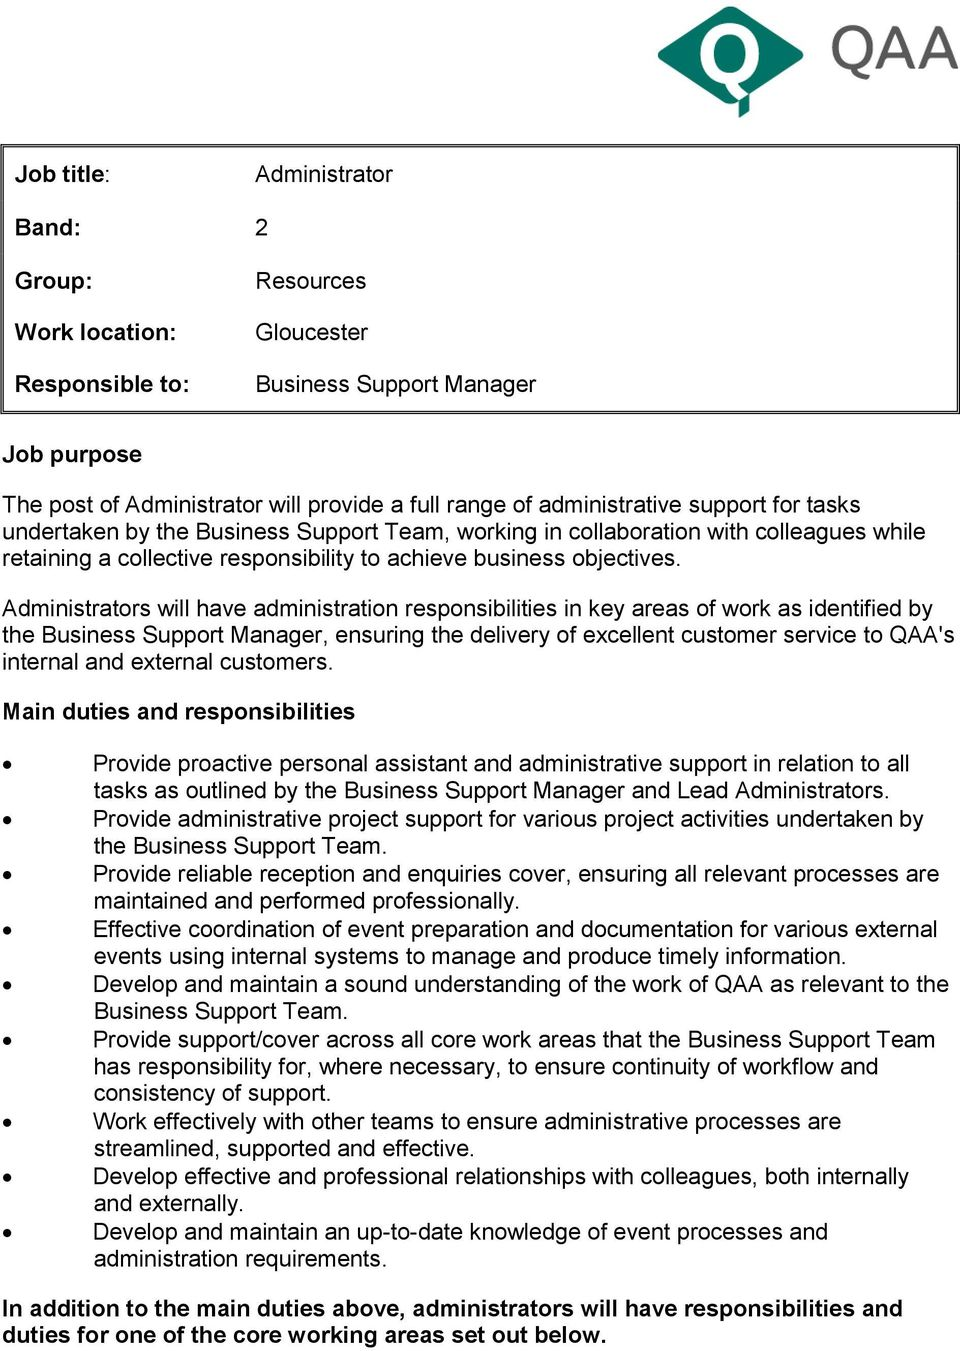 Administrators will have administration responsibilities in key areas of work as identified by the Business Support Manager, ensuring the delivery of excellent customer service to QAA's internal and